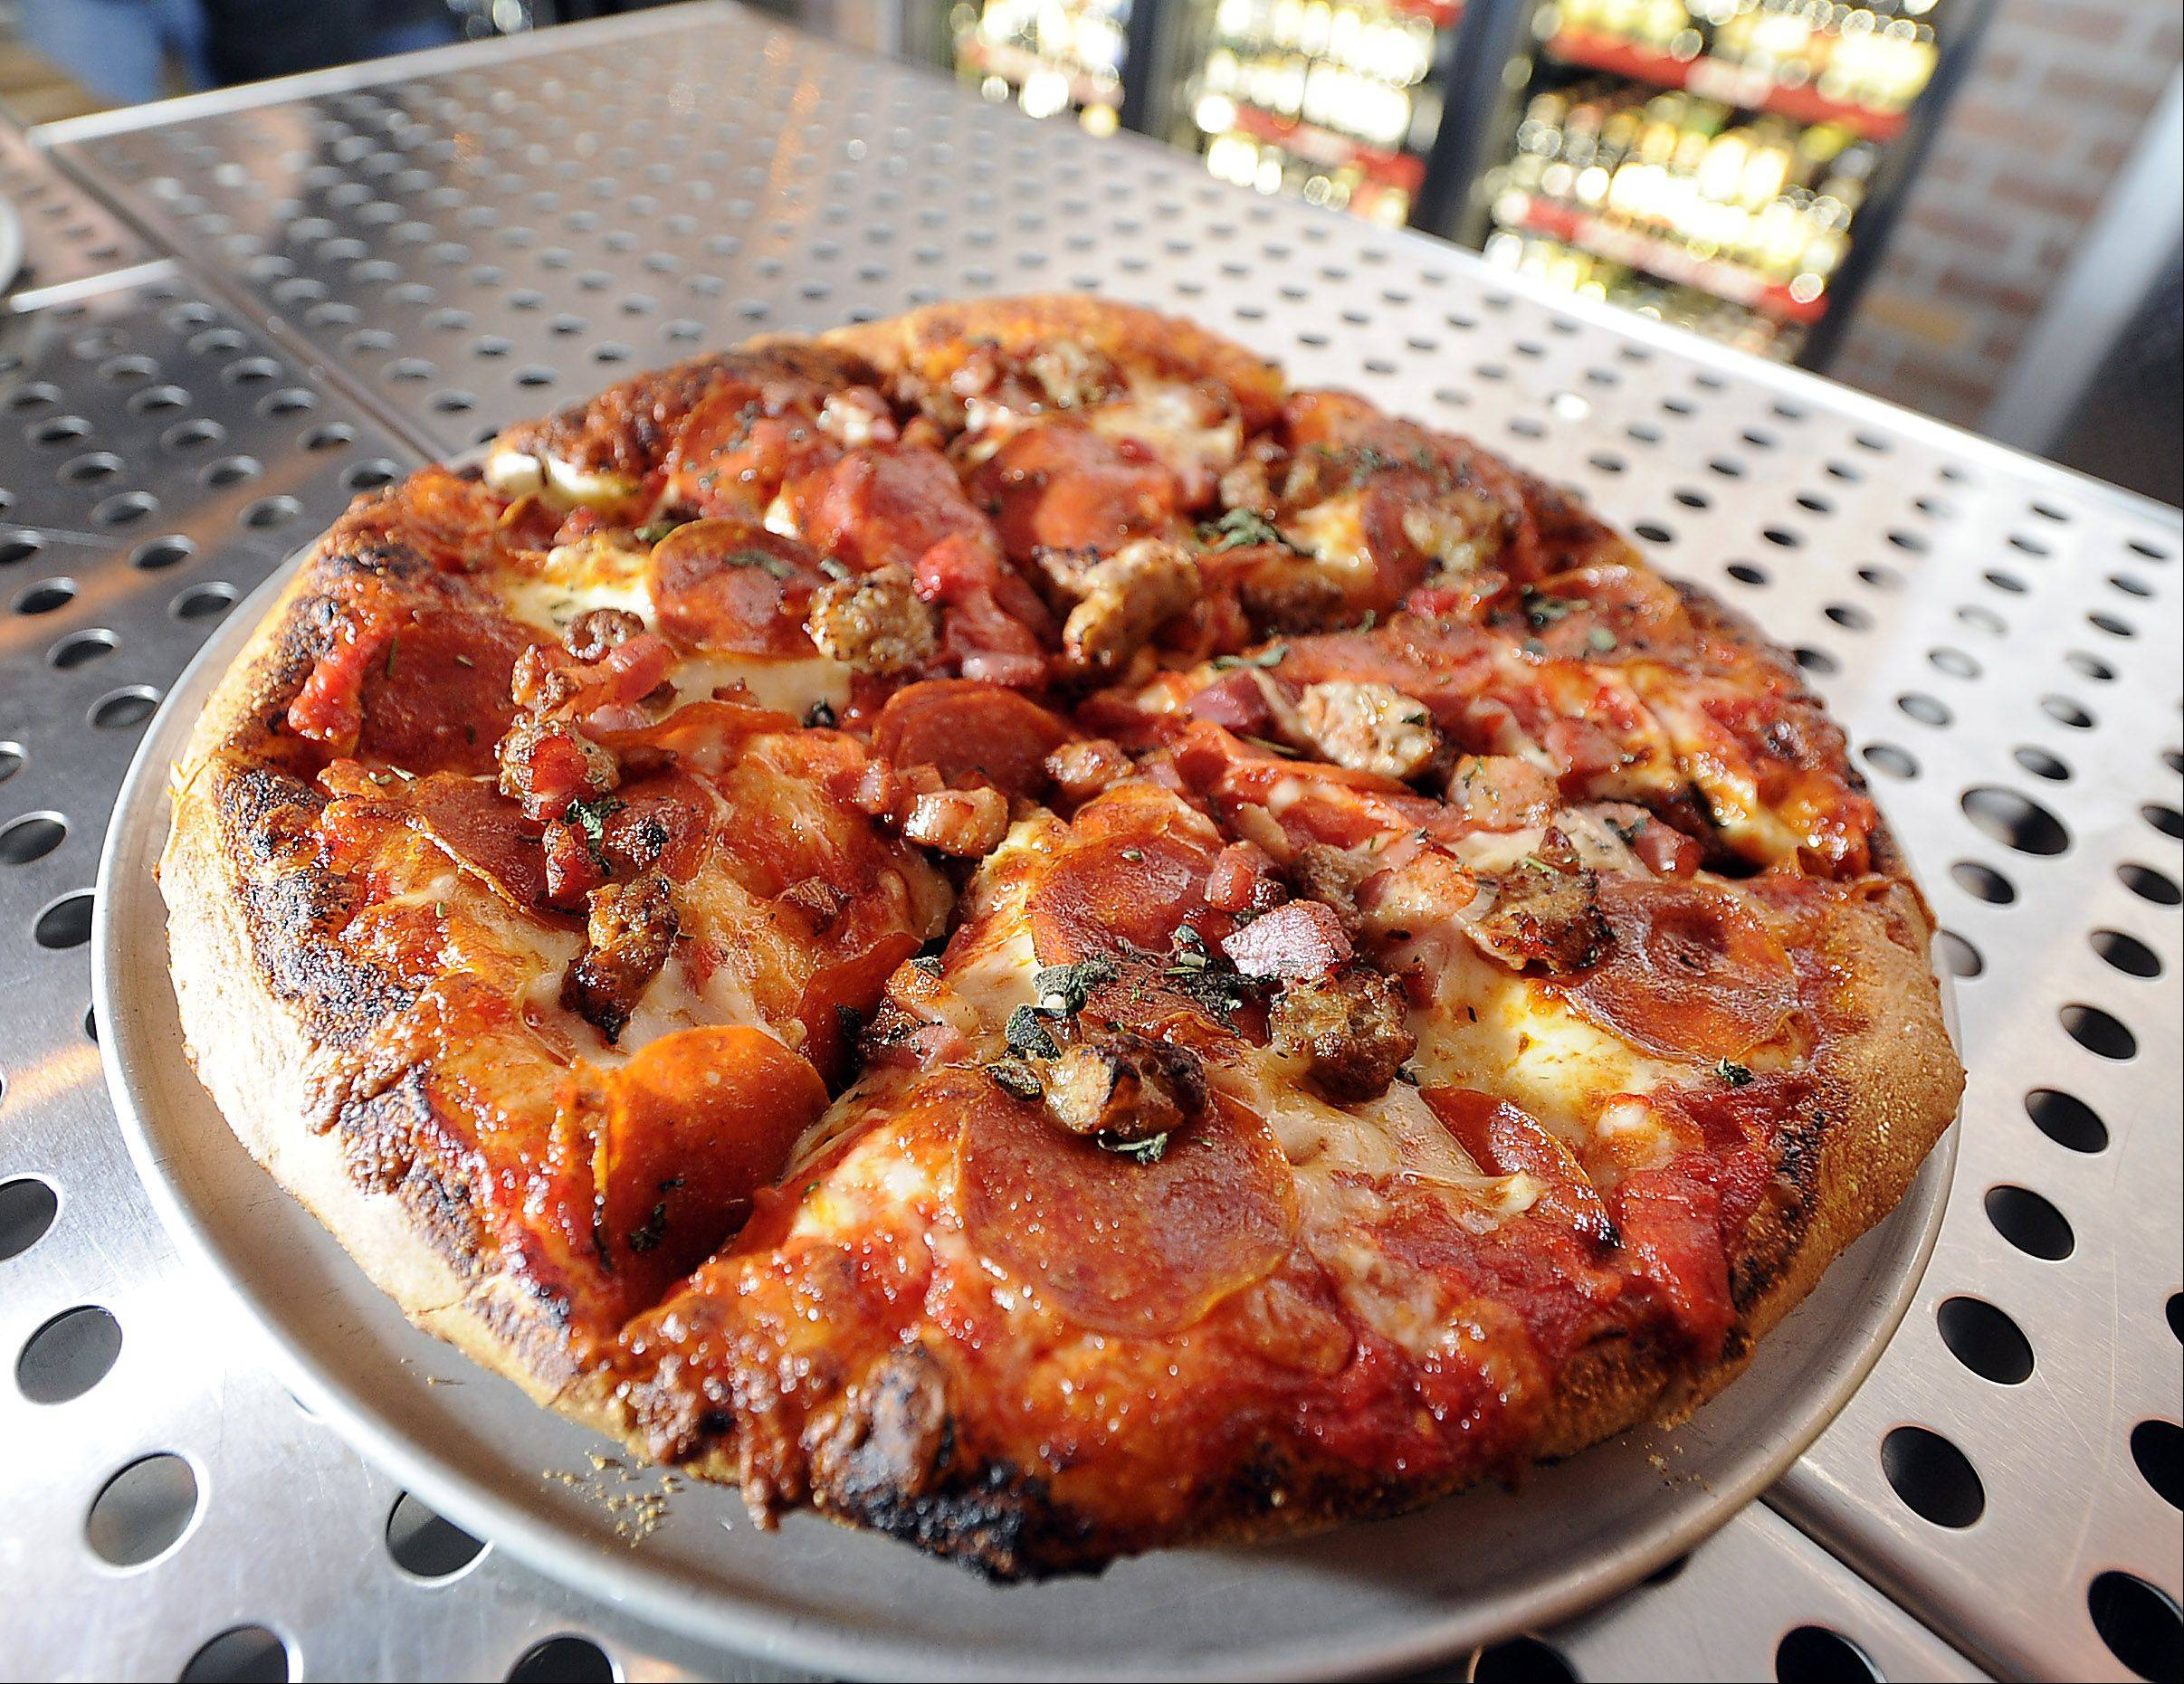 The Beer Market in Schaumburg serves pizza, but you can also order from nearby restaurants.